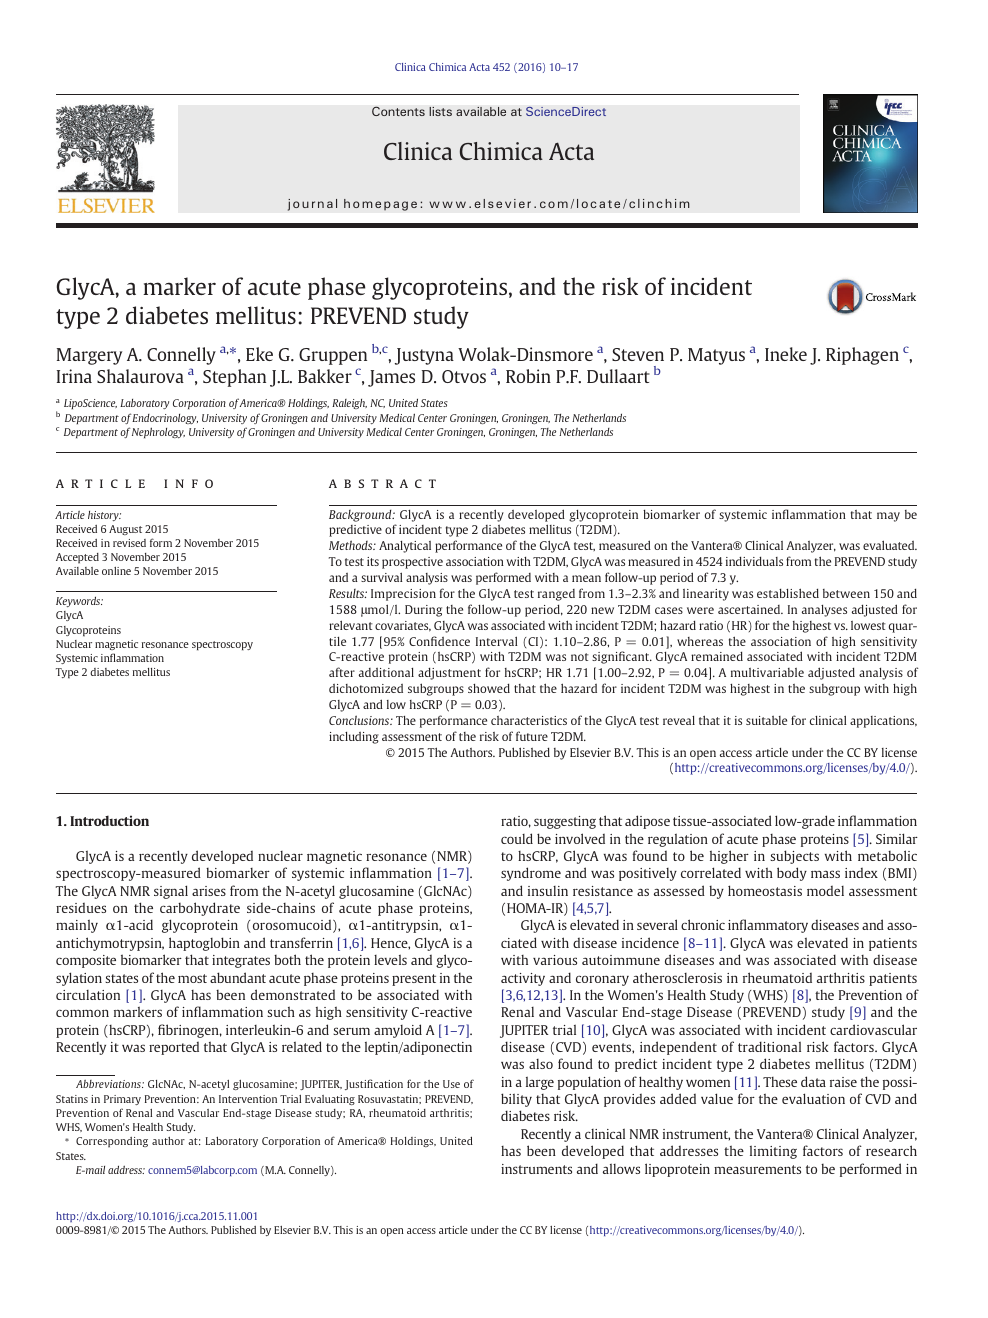 GlycA, a marker of acute phase glycoproteins, and the risk of